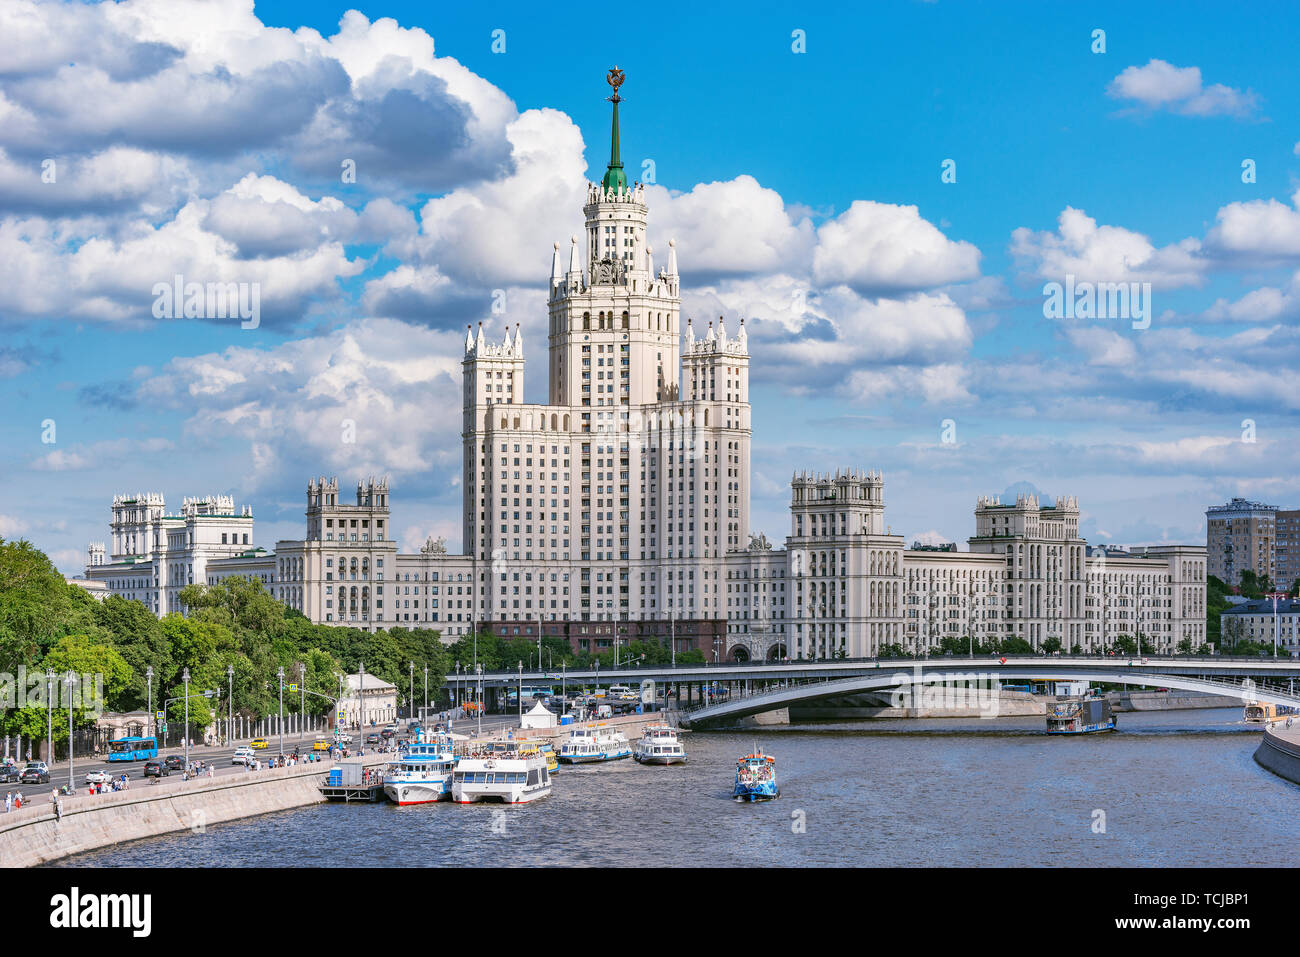 Retro skyscraper on Kotelnicheskaya embankment by Moscow river at summer day time. Moscow. Russia. Stock Photo